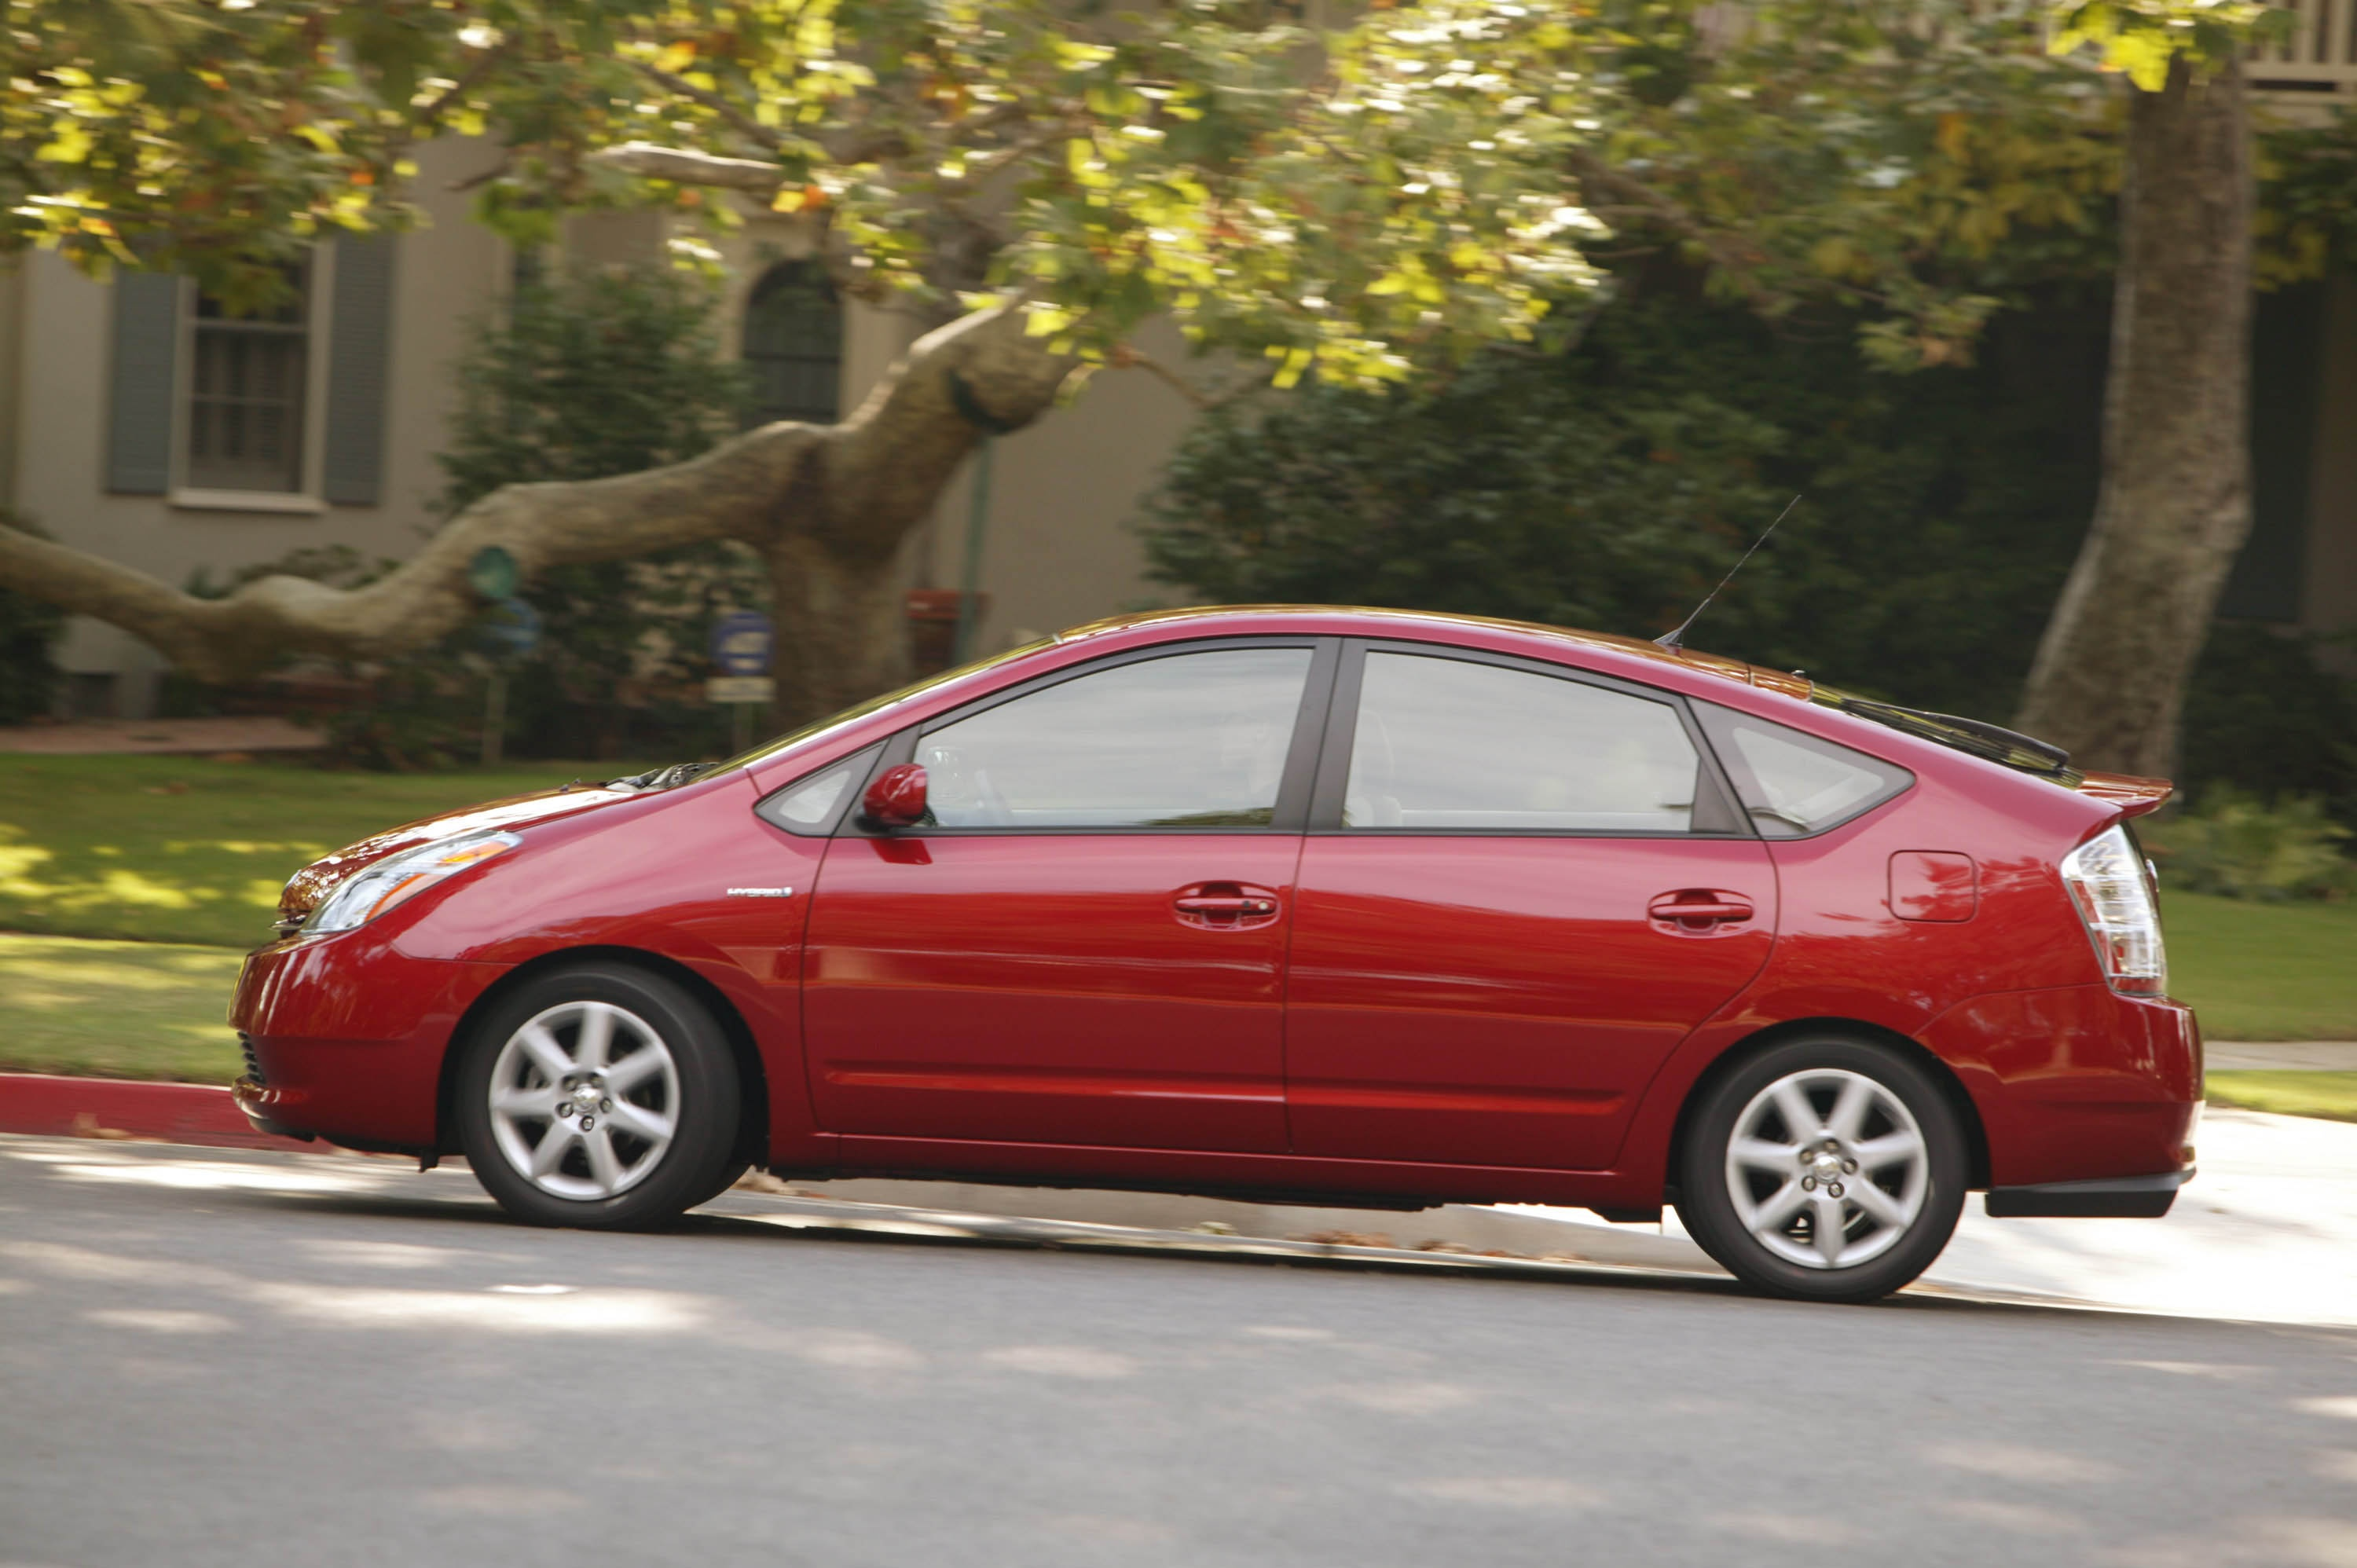 Prius and prius touring comparison | howstuffworks.